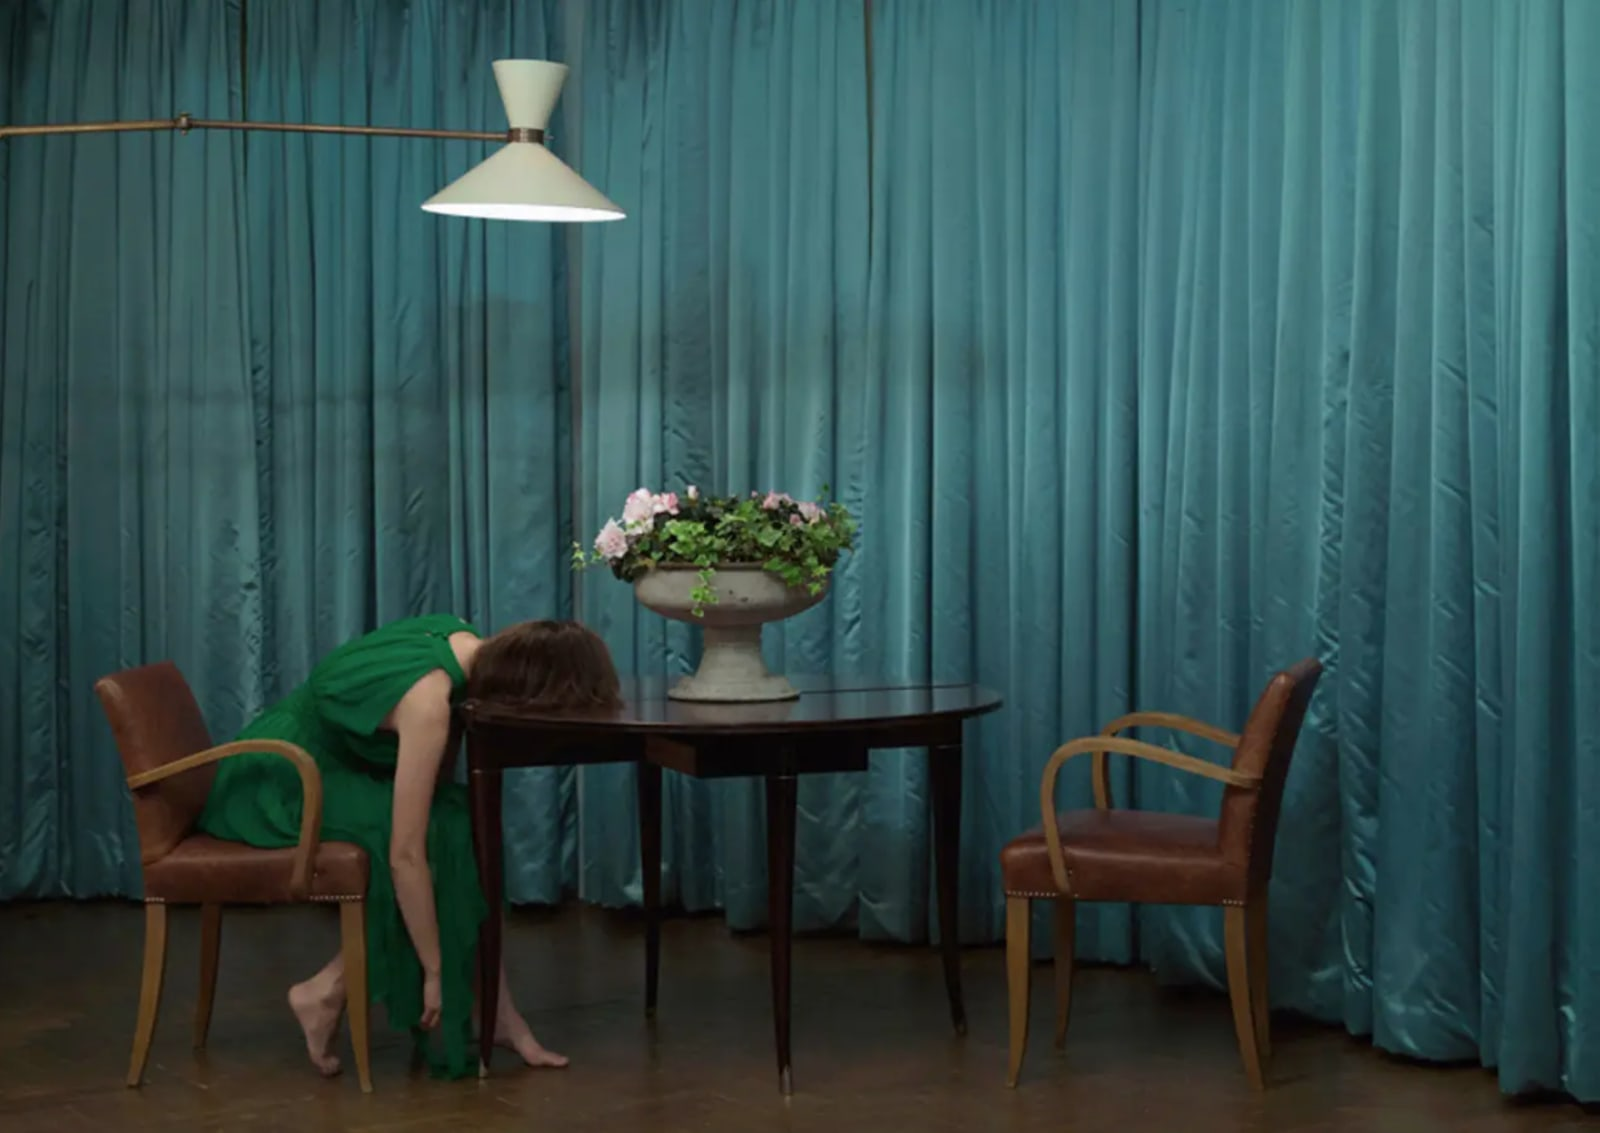 Anja Niemi, Do not Disturb; Room 39, 2011